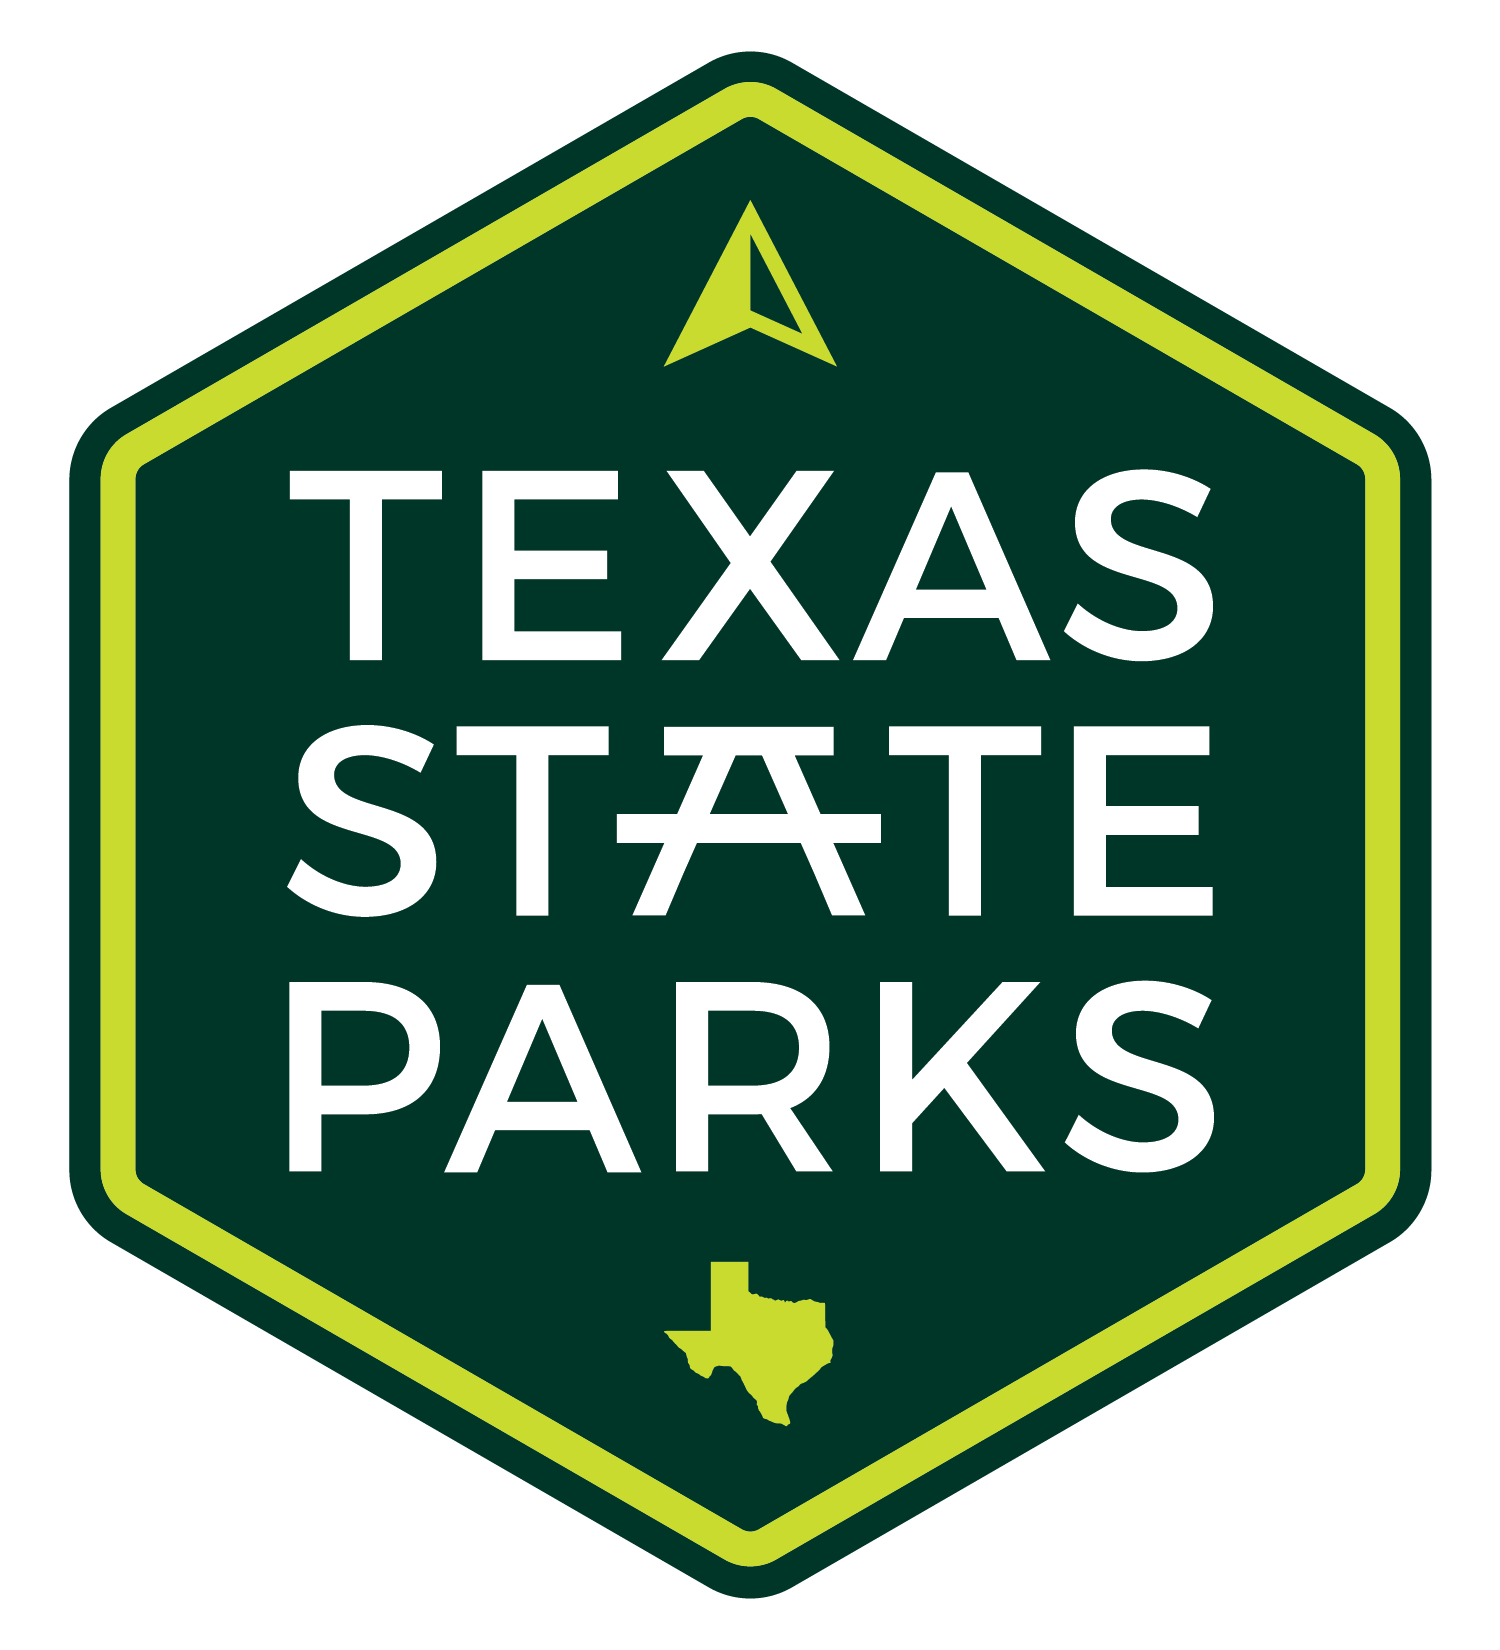 Texas State Parks.